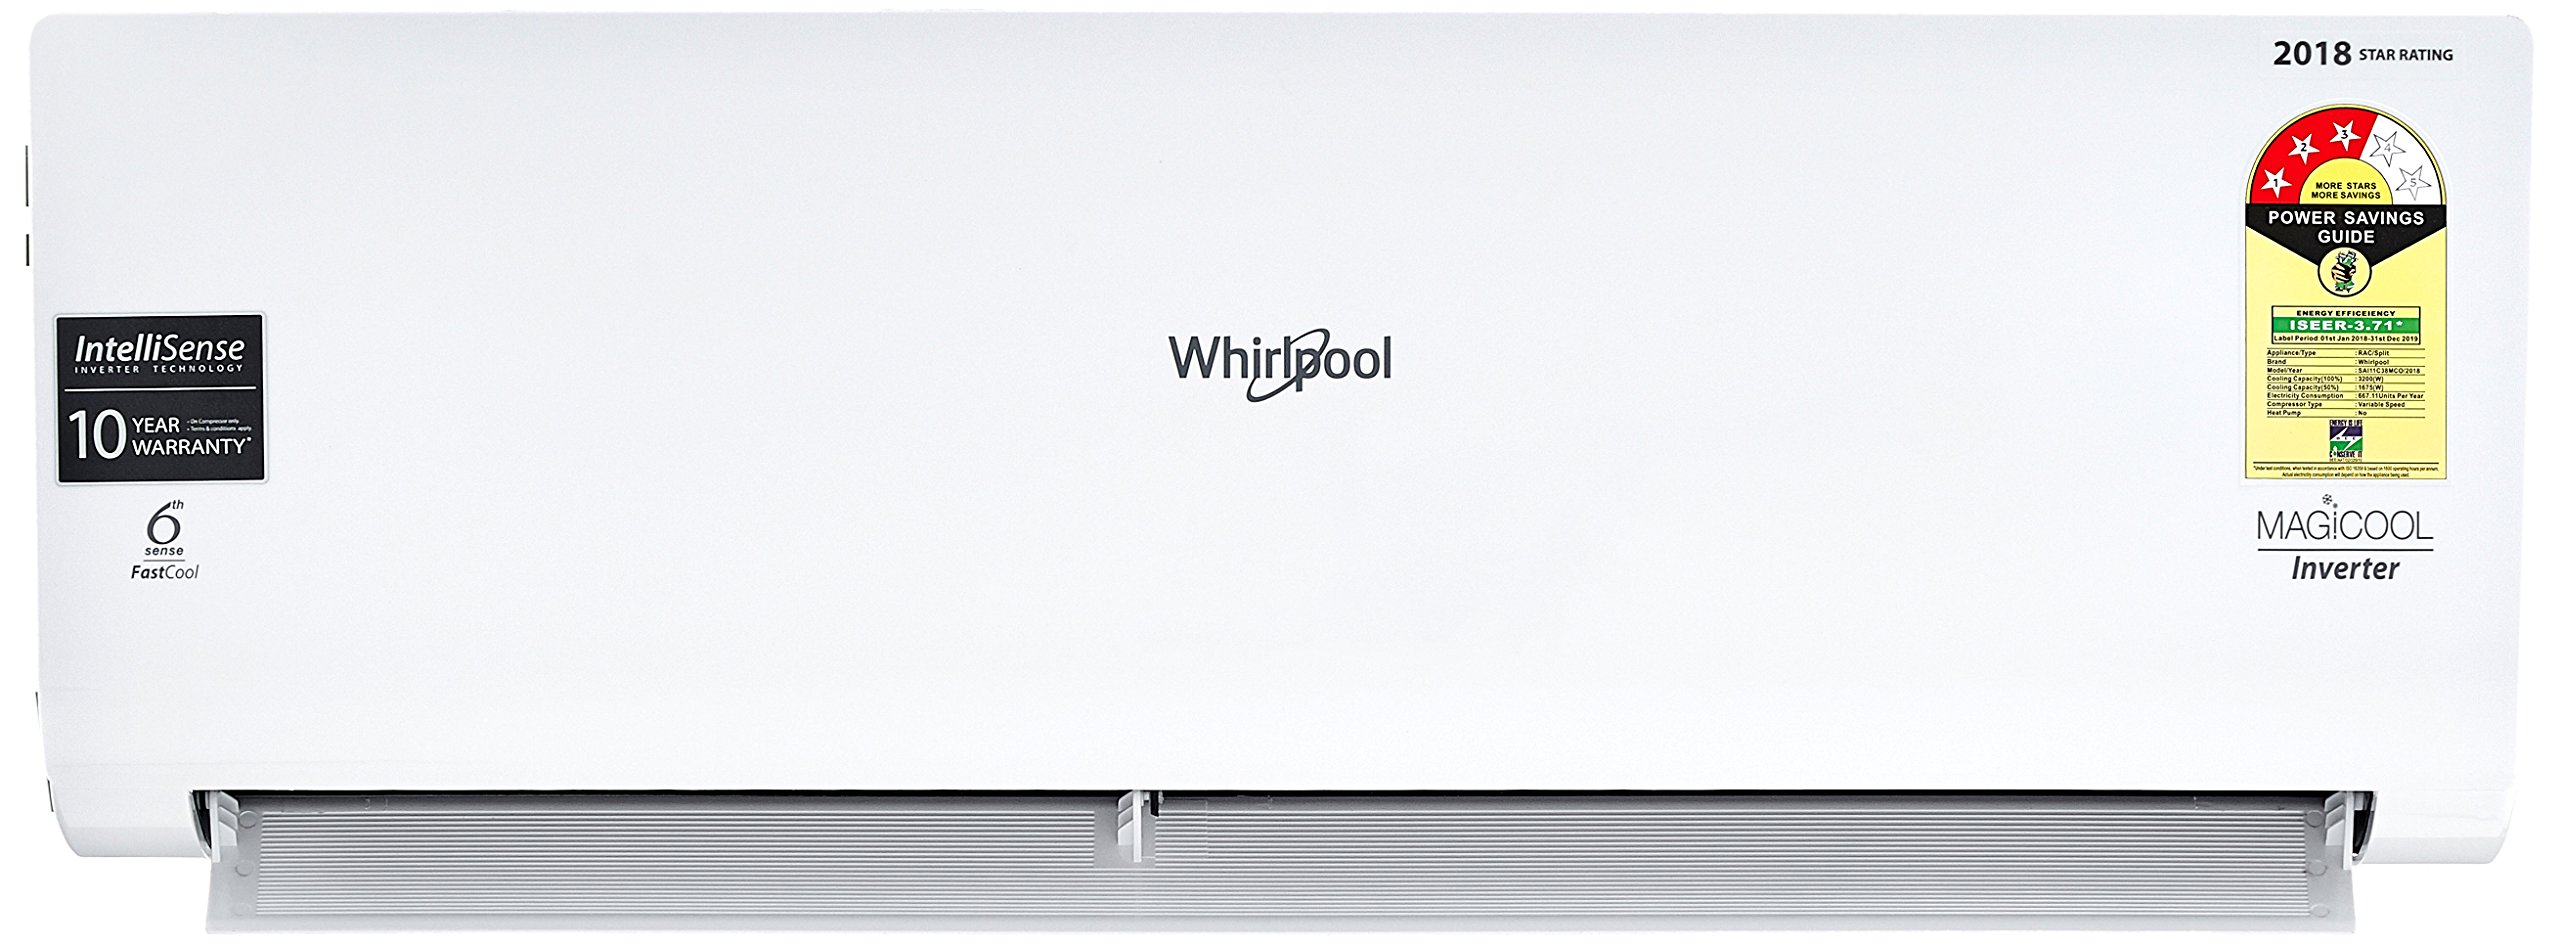 Whirlpool 1 Ton Inverter Split AC